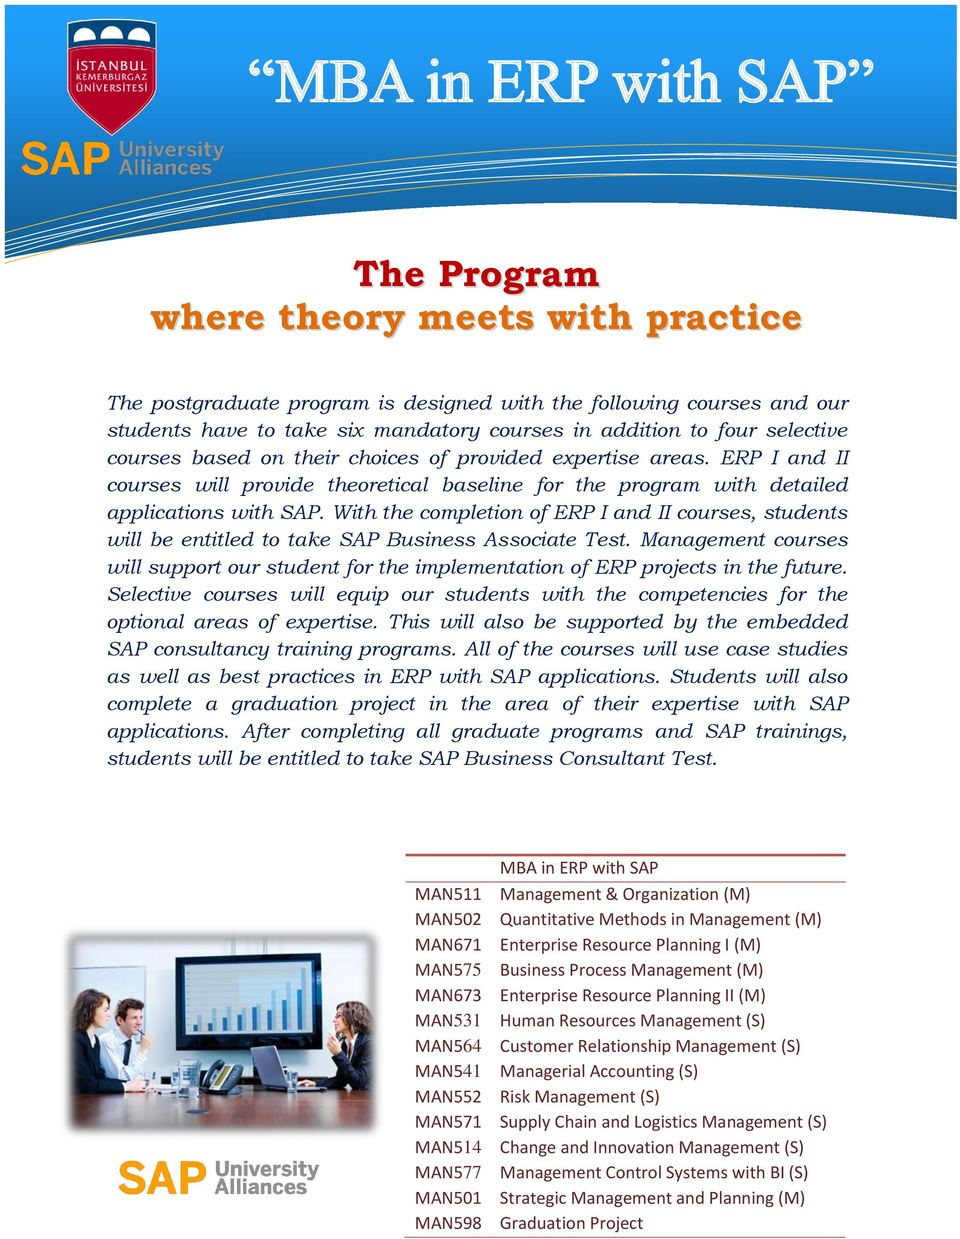 With the completion of ERP I and II courses, students will be entitled to take SAP Business Associate Test.